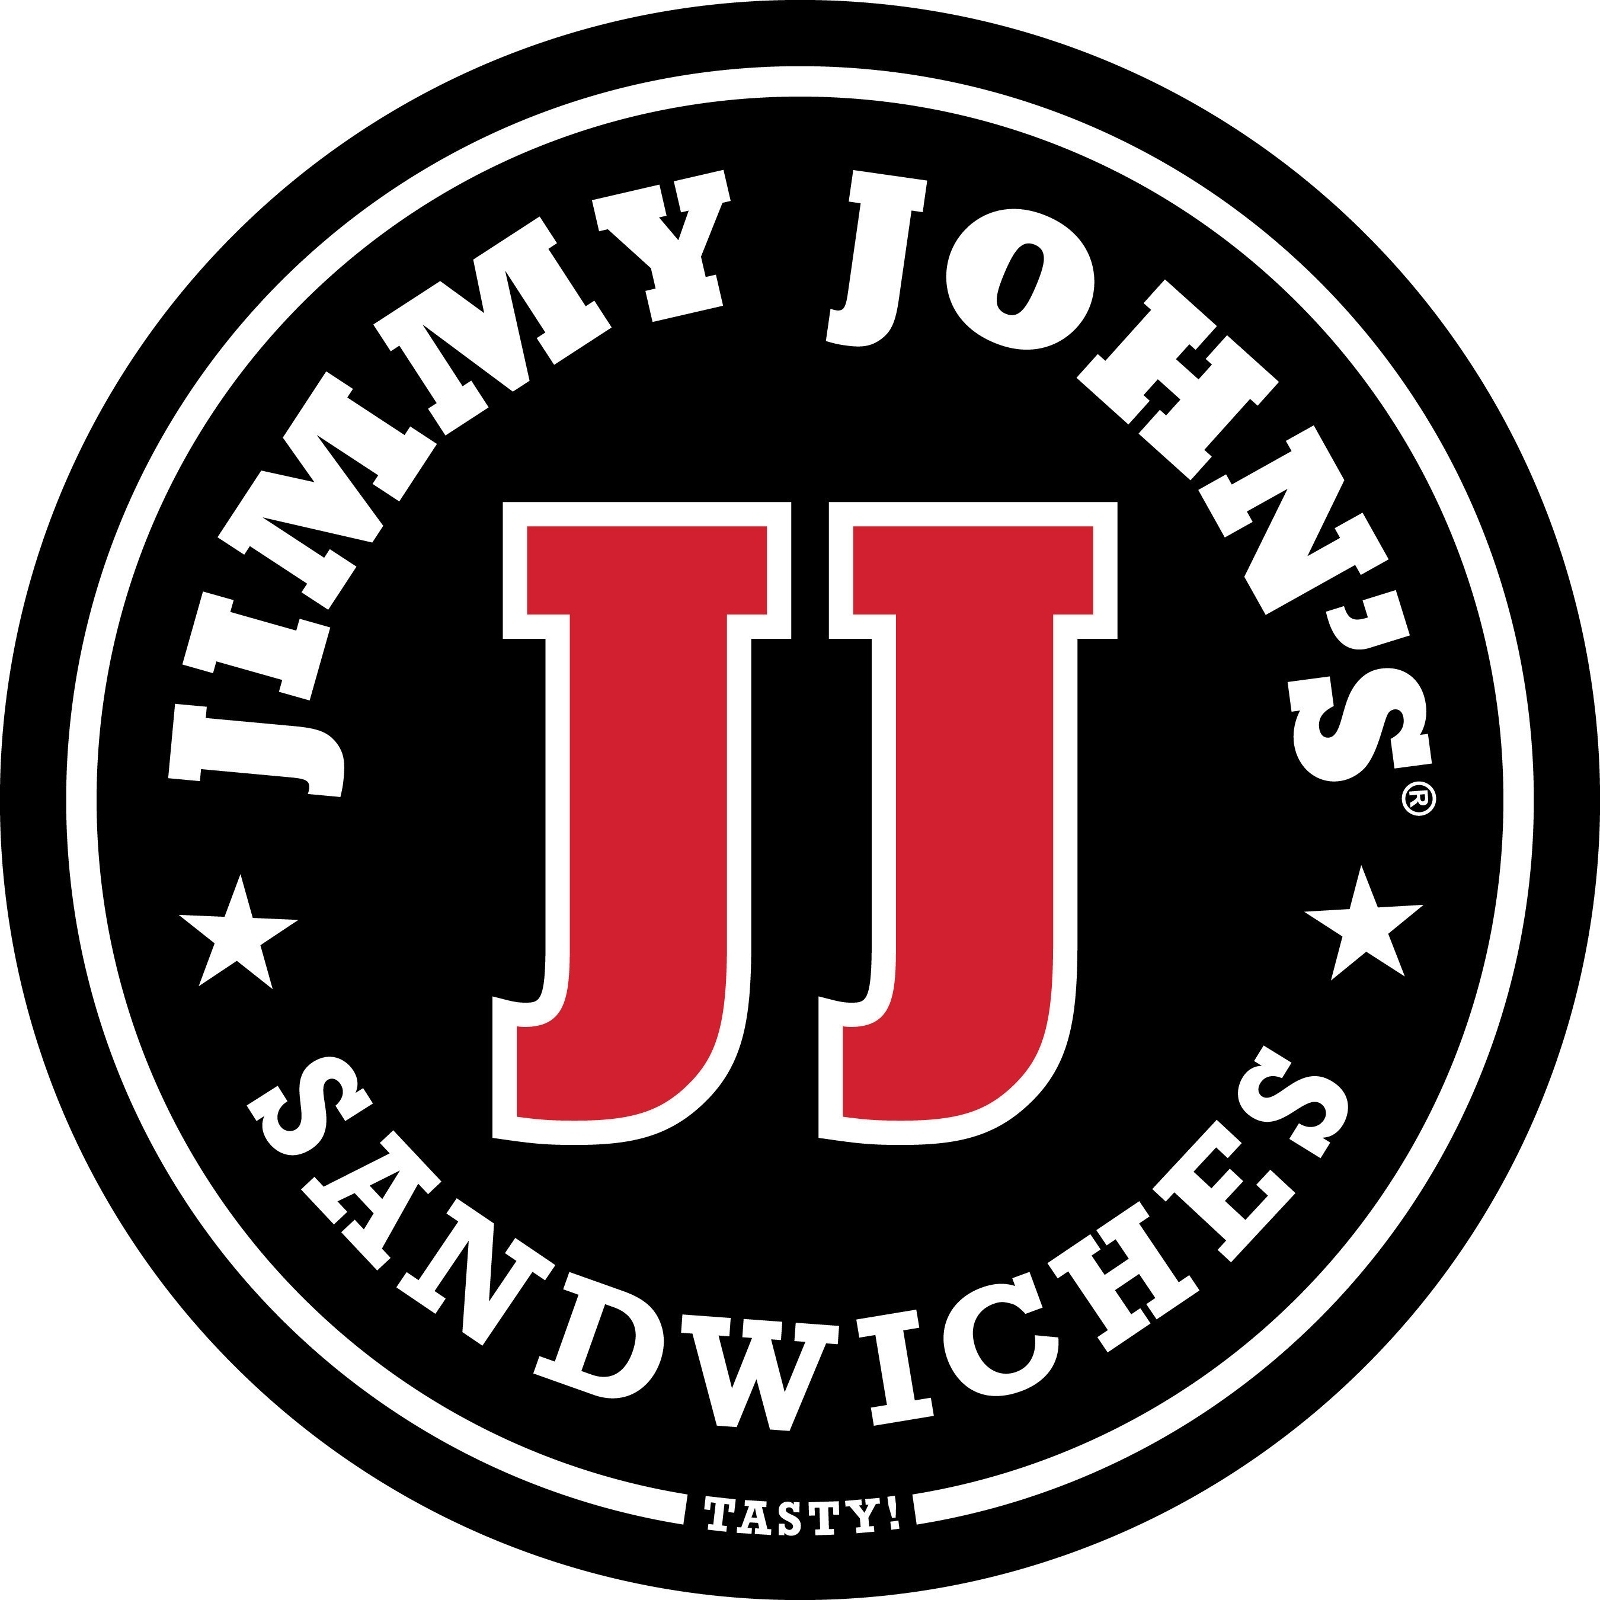 Jimmy John's has opened more than 200 locations in each of the last five years.